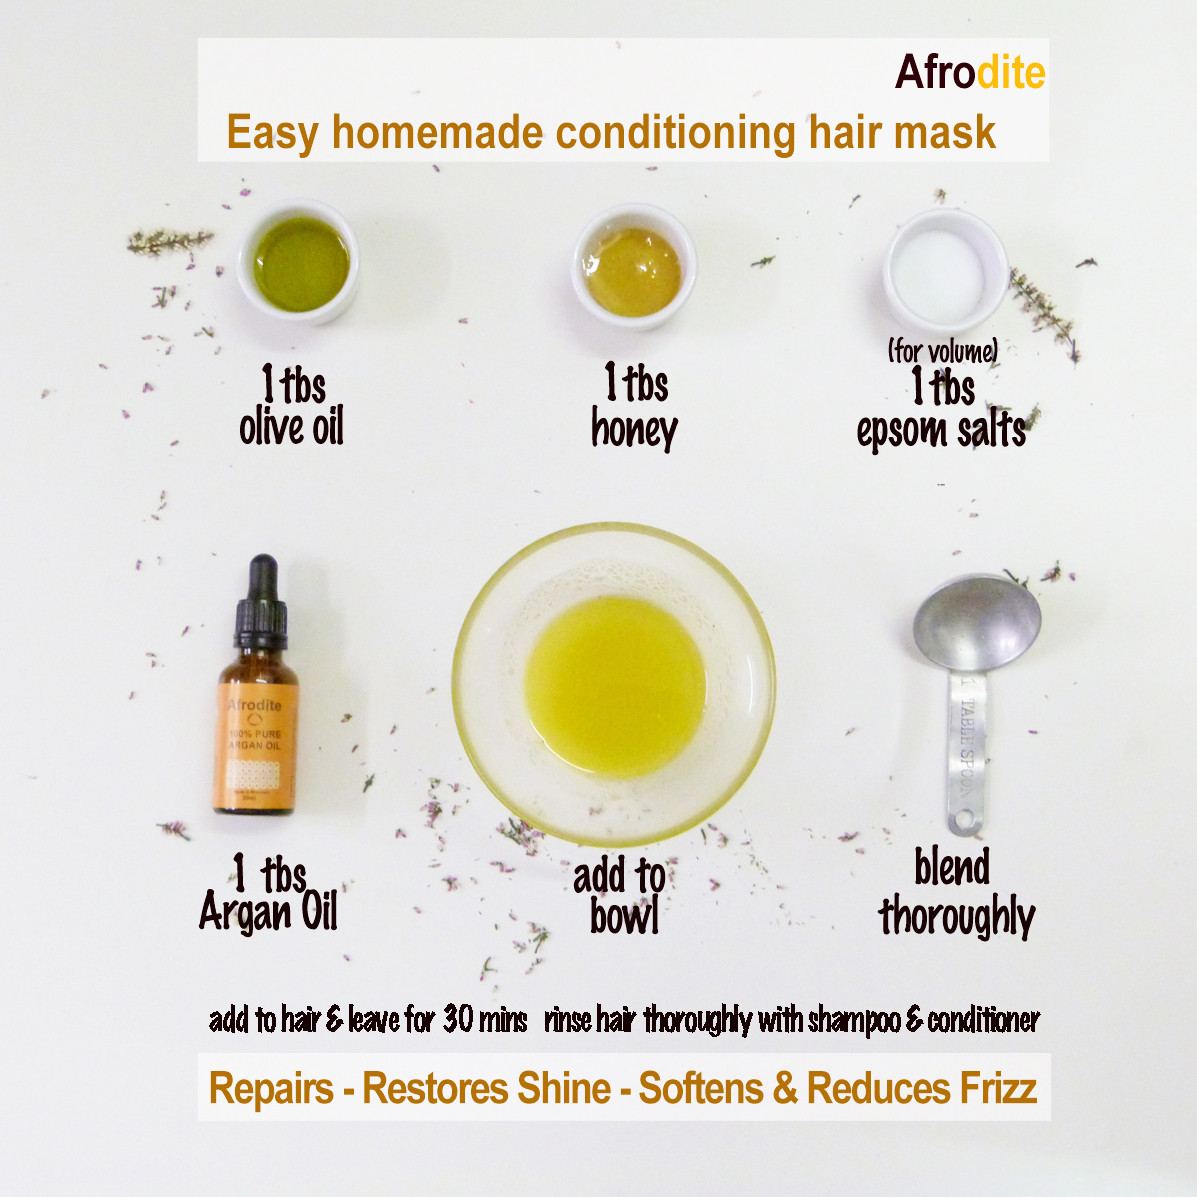 Best ideas about Argan Oil Hair Mask DIY . Save or Pin Blog Winter Hair Survival Homemade conditioning mask Now.